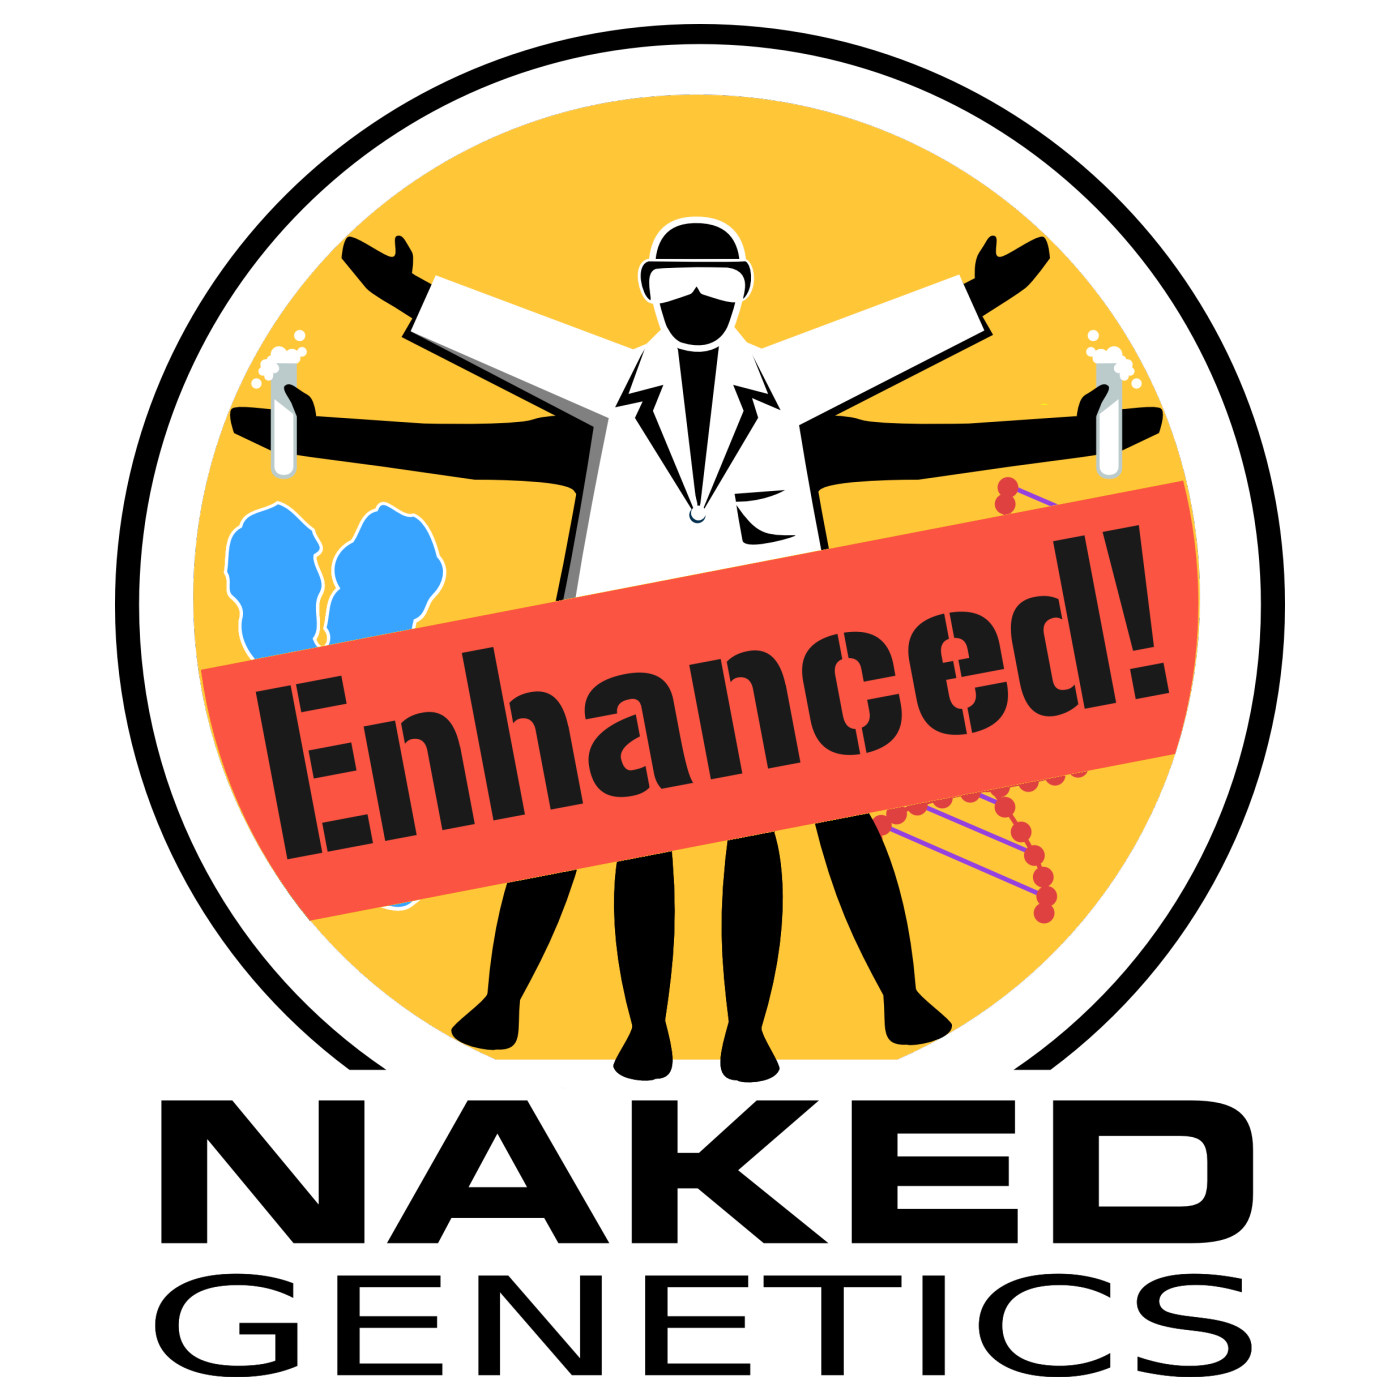 Naked Genetics Enhanced - from the Naked Scientists